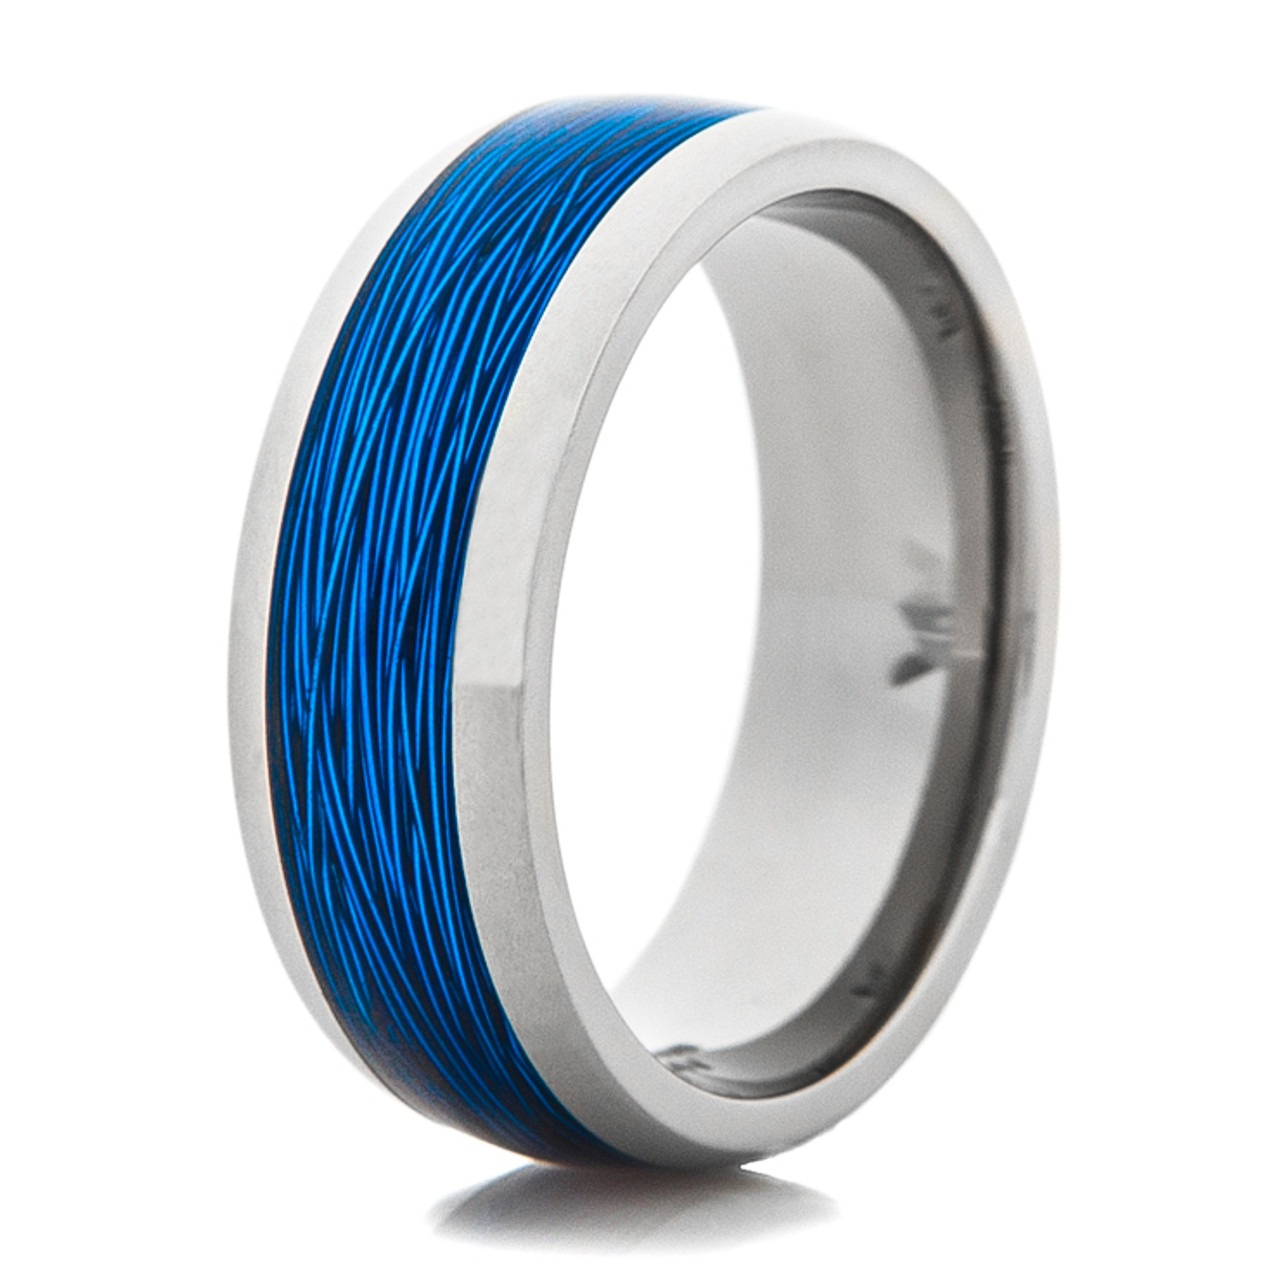 Titanium Ring with Blue Fishing Line Inlay TitaniumBuzz